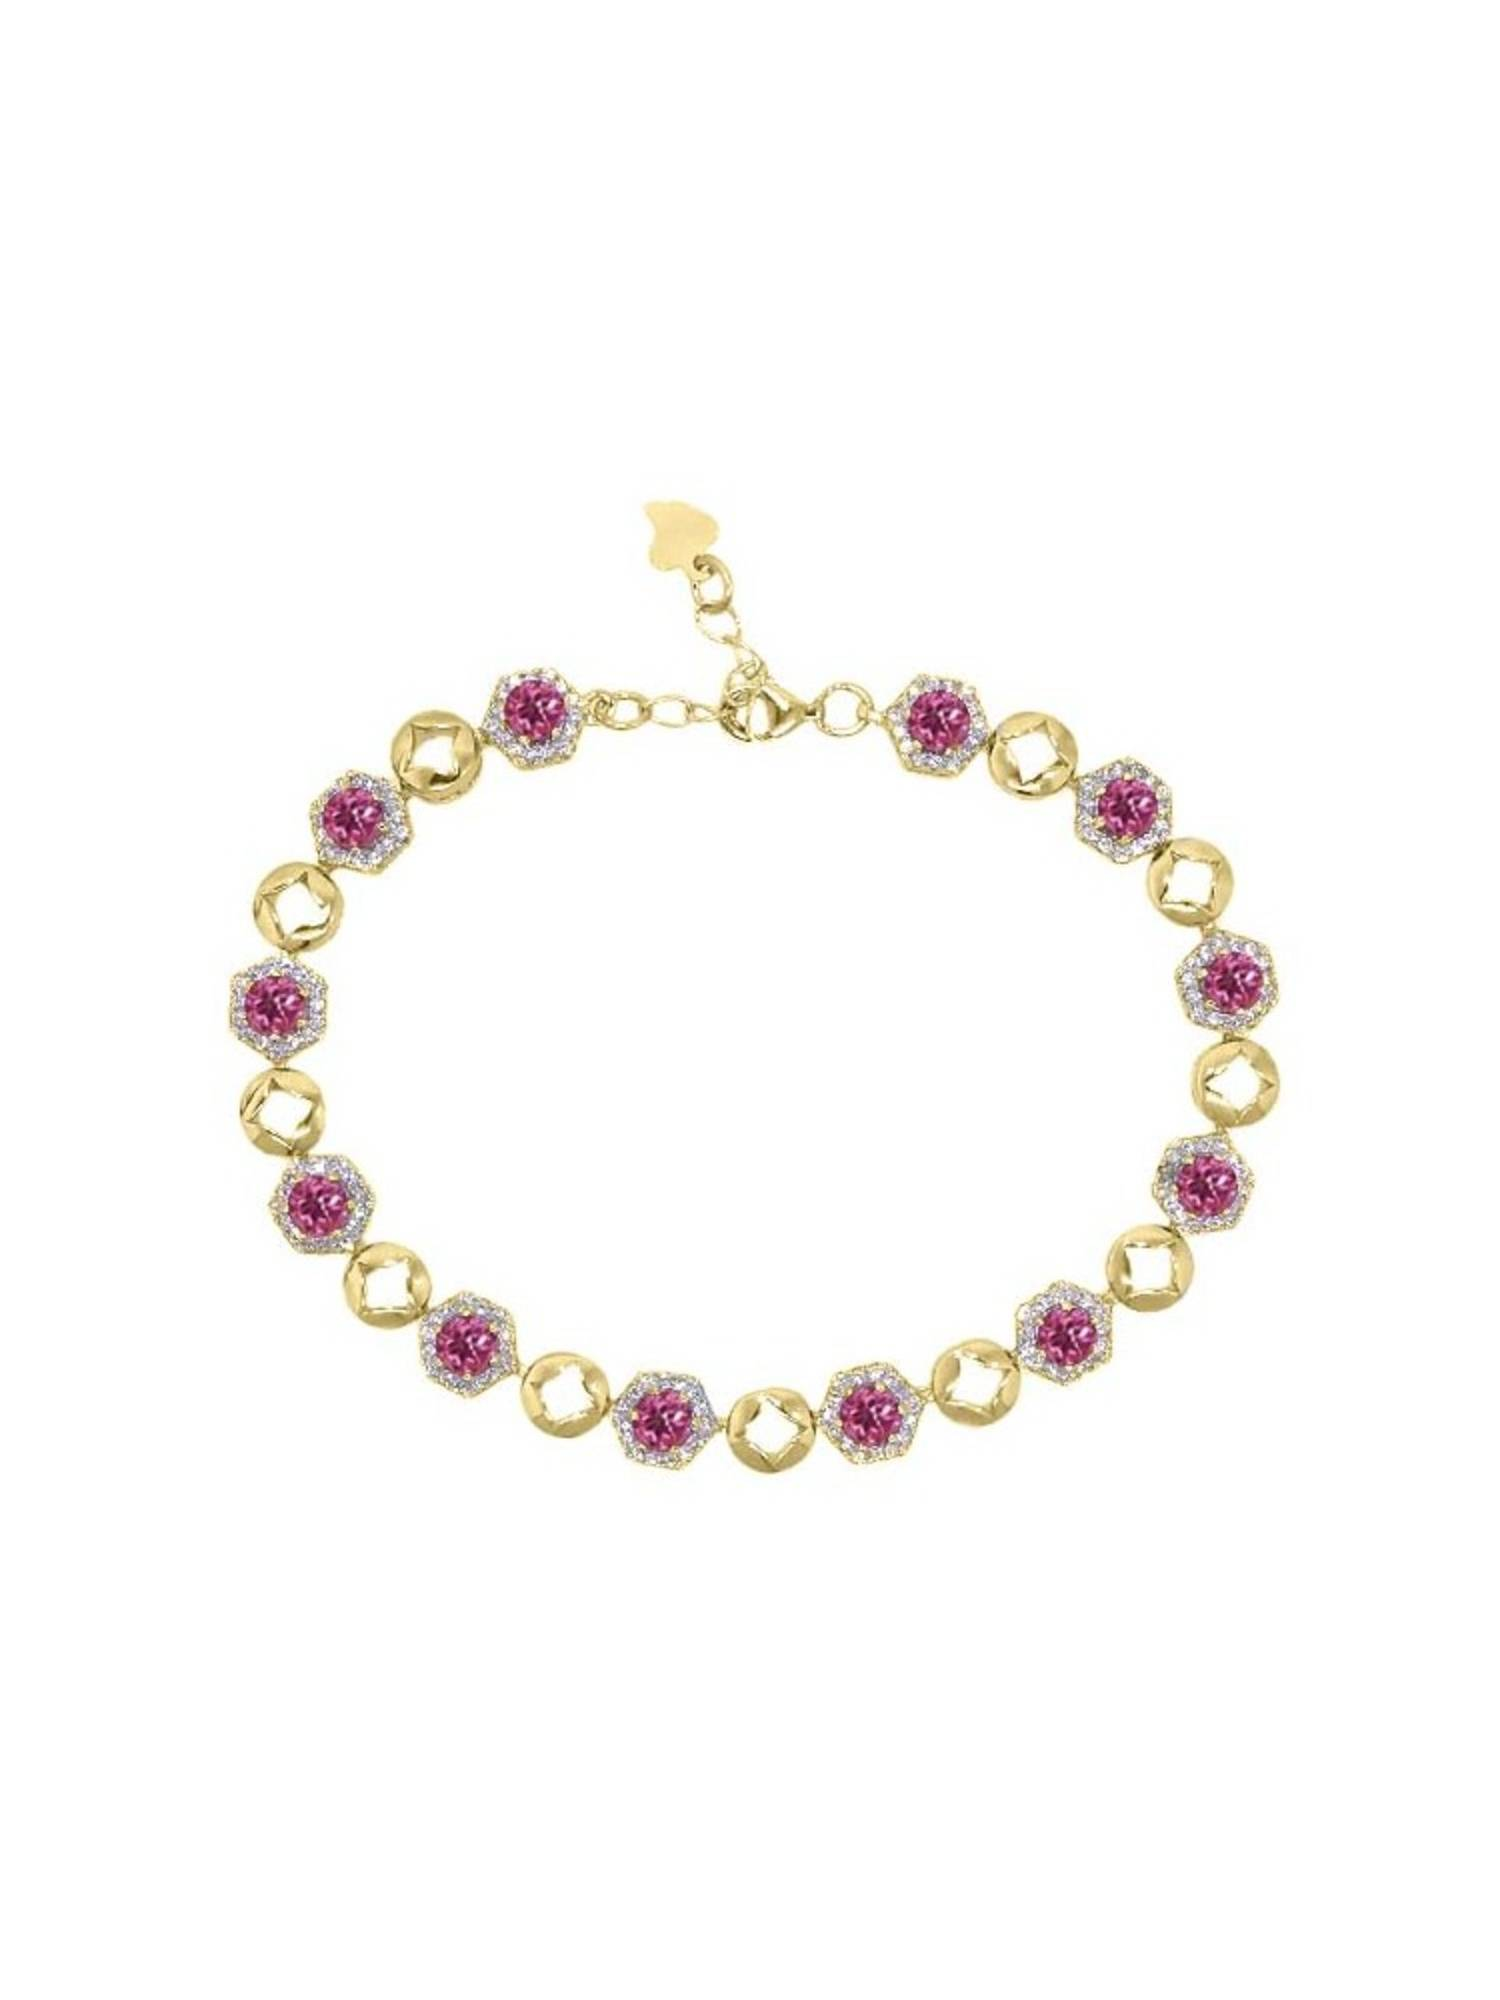 5.69 Ct Round Pink Tourmaline 18K Yellow Gold Plated Silver Bracelet by